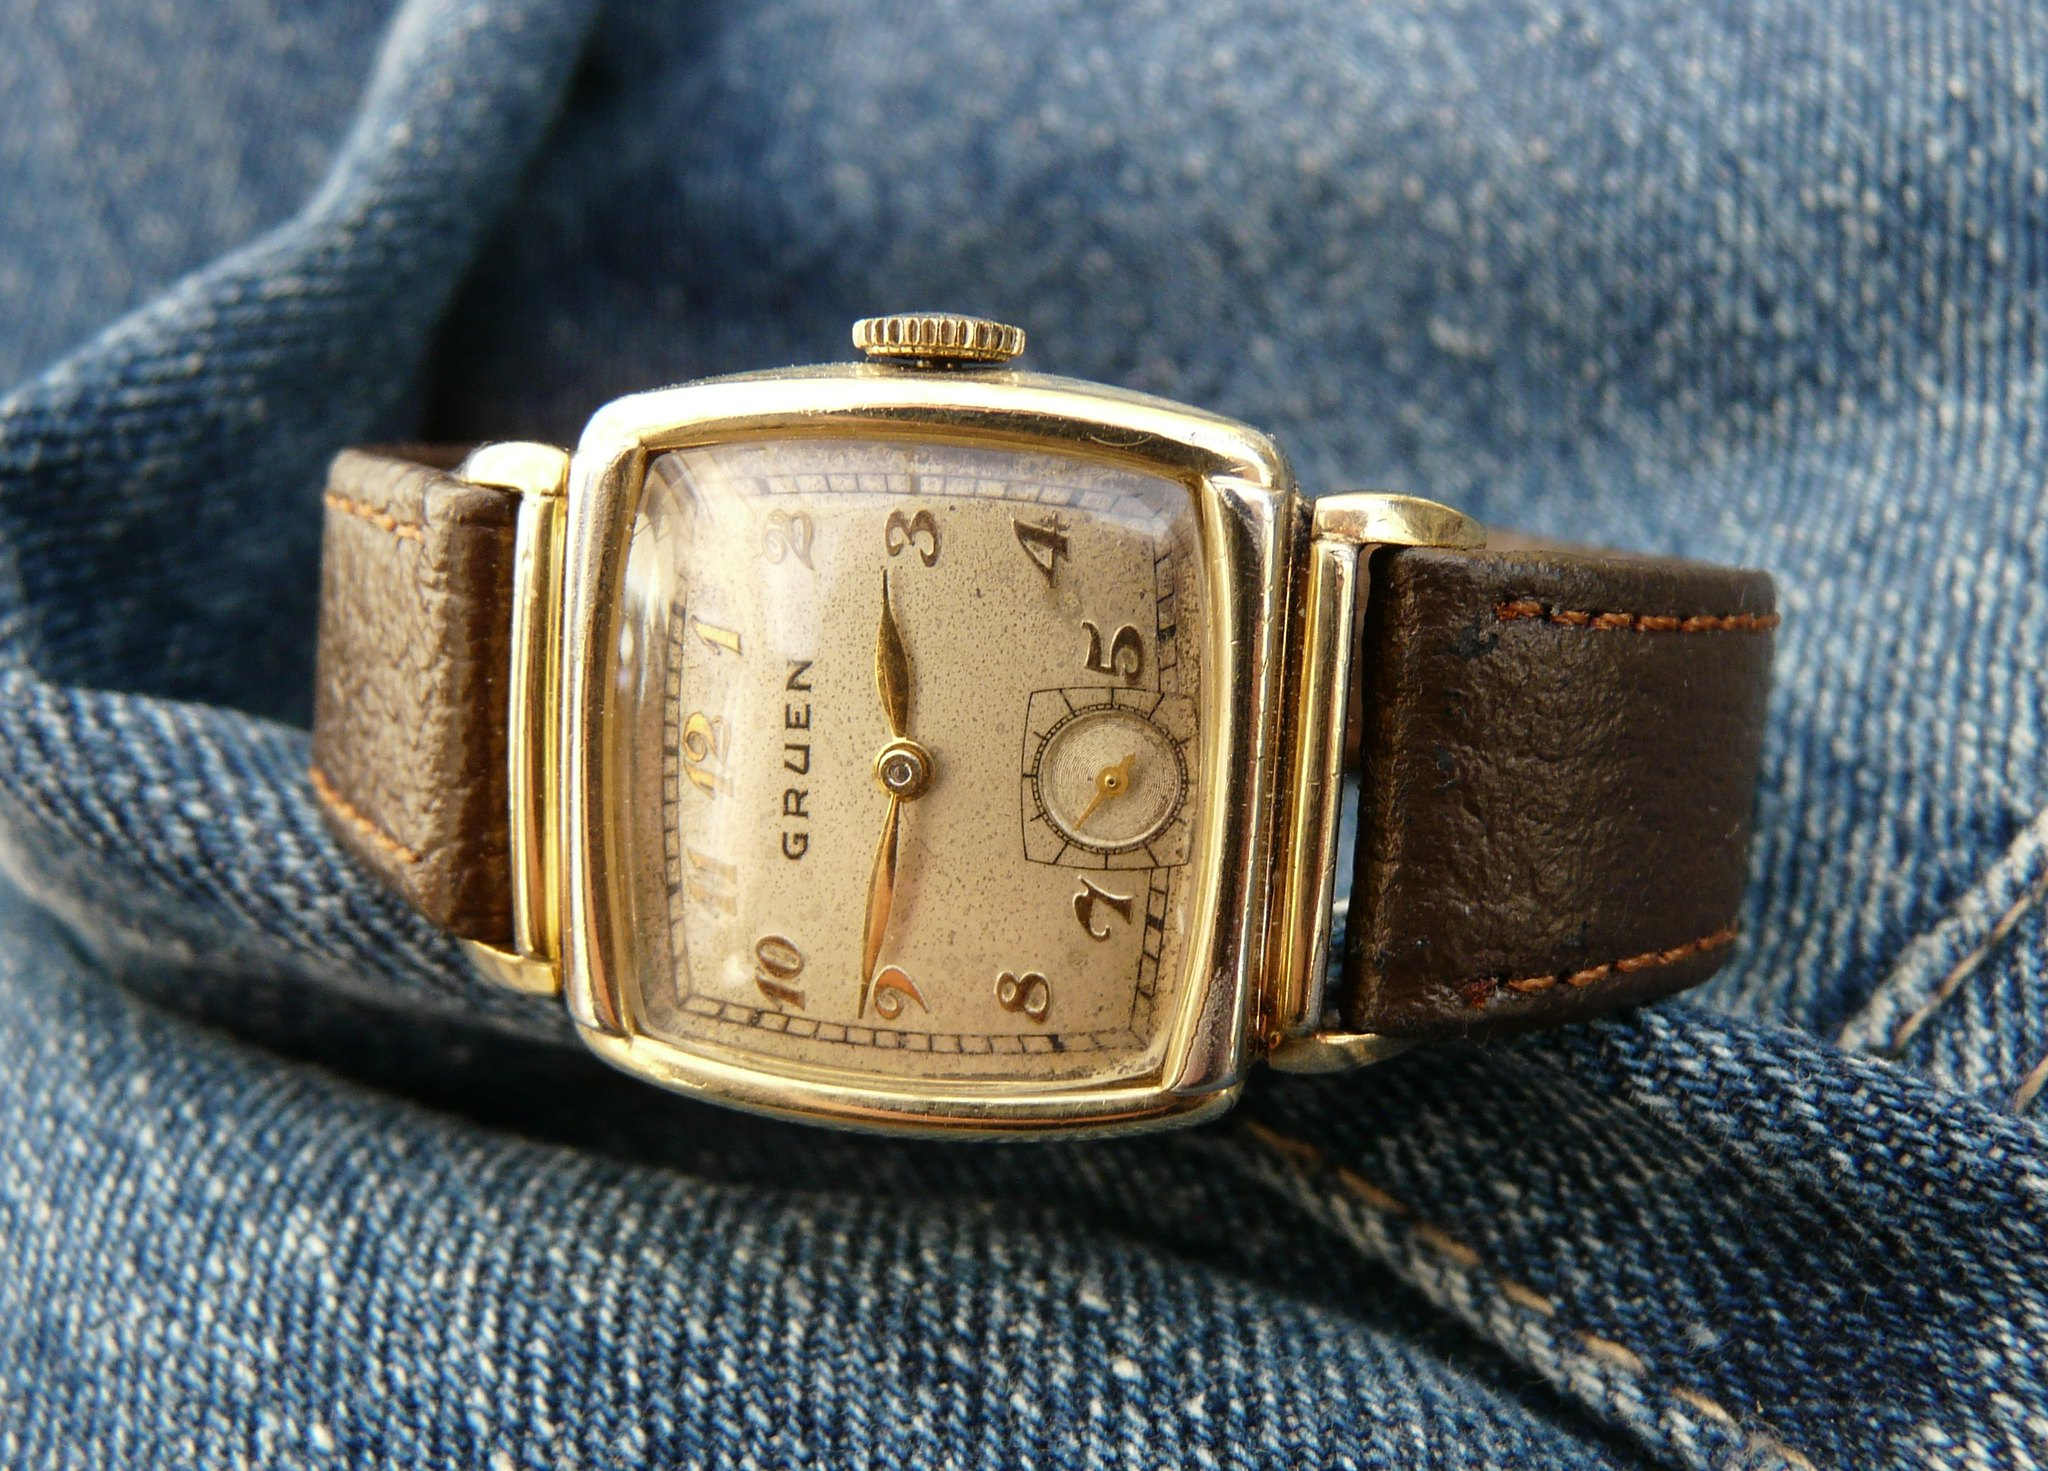 Vintage Gruen Watches: Everything You Need To Know